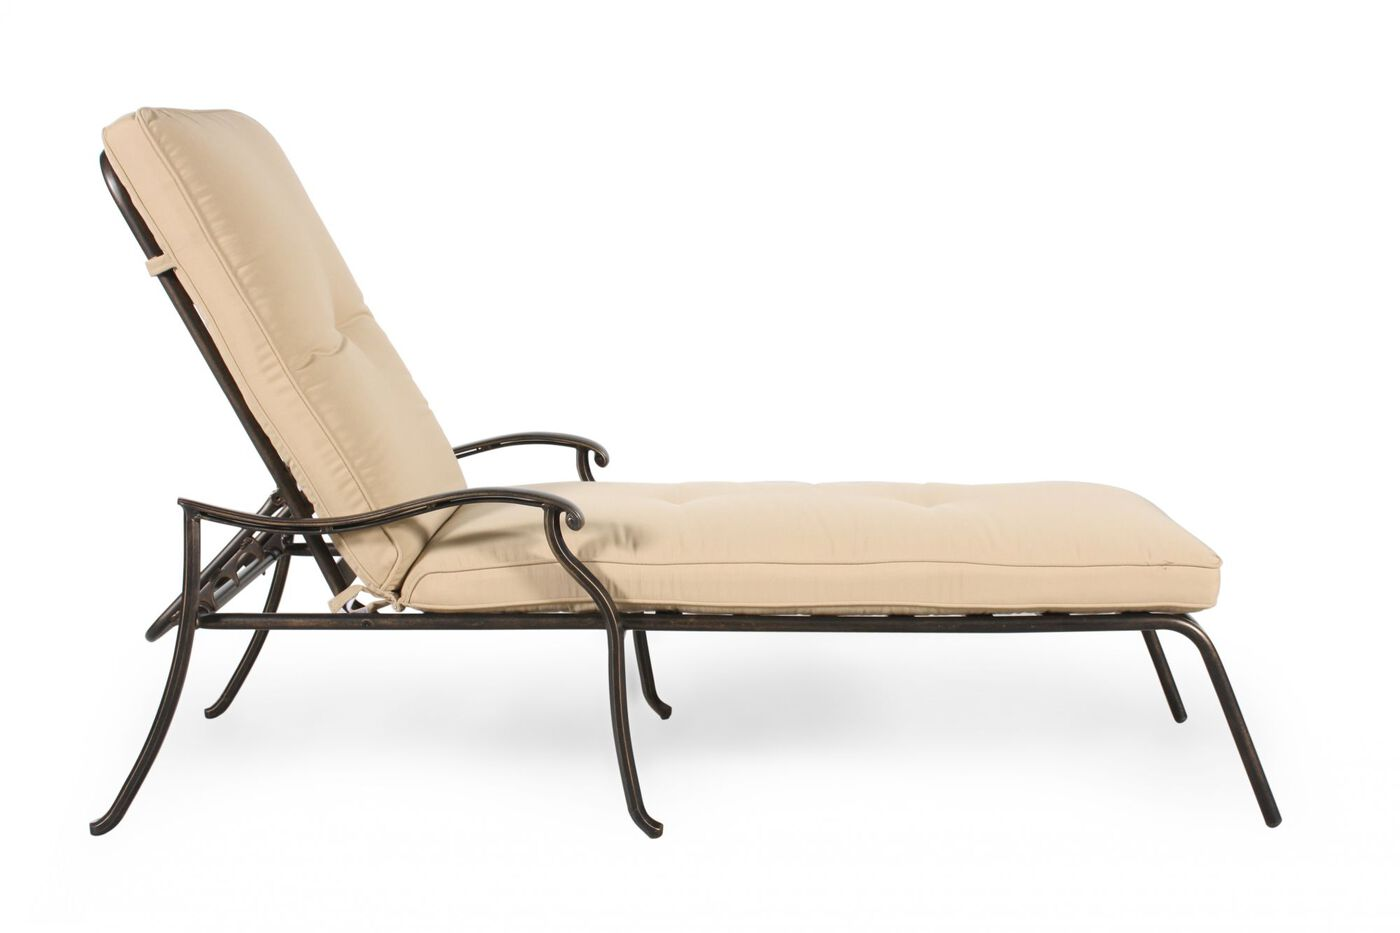 Casual aluminum chaise lounge in cream mathis brothers for Aluminium chaise lounge